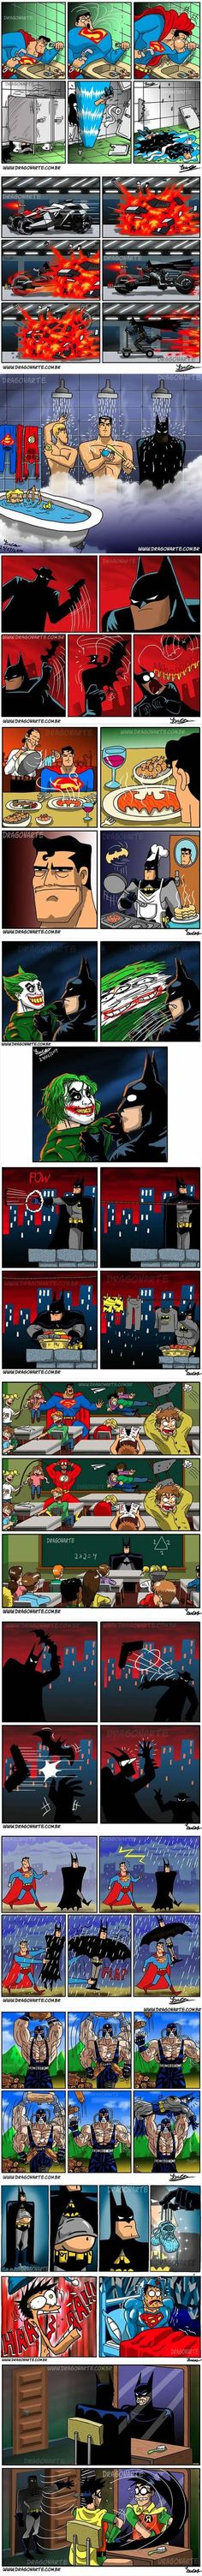 The Funniest Superhero Comics Collection (Part - Batman Funny - Ideas of Batman Funny - I don't know what's funnier the Bat scooter or Aquaman in the bathtub with his rubber ducky. Comics Story, Bd Comics, Marvel Dc Comics, Funny Comics, Humor Batman, Funny Batman, Batman Stuff, Tableau Star Wars, Rage Comic